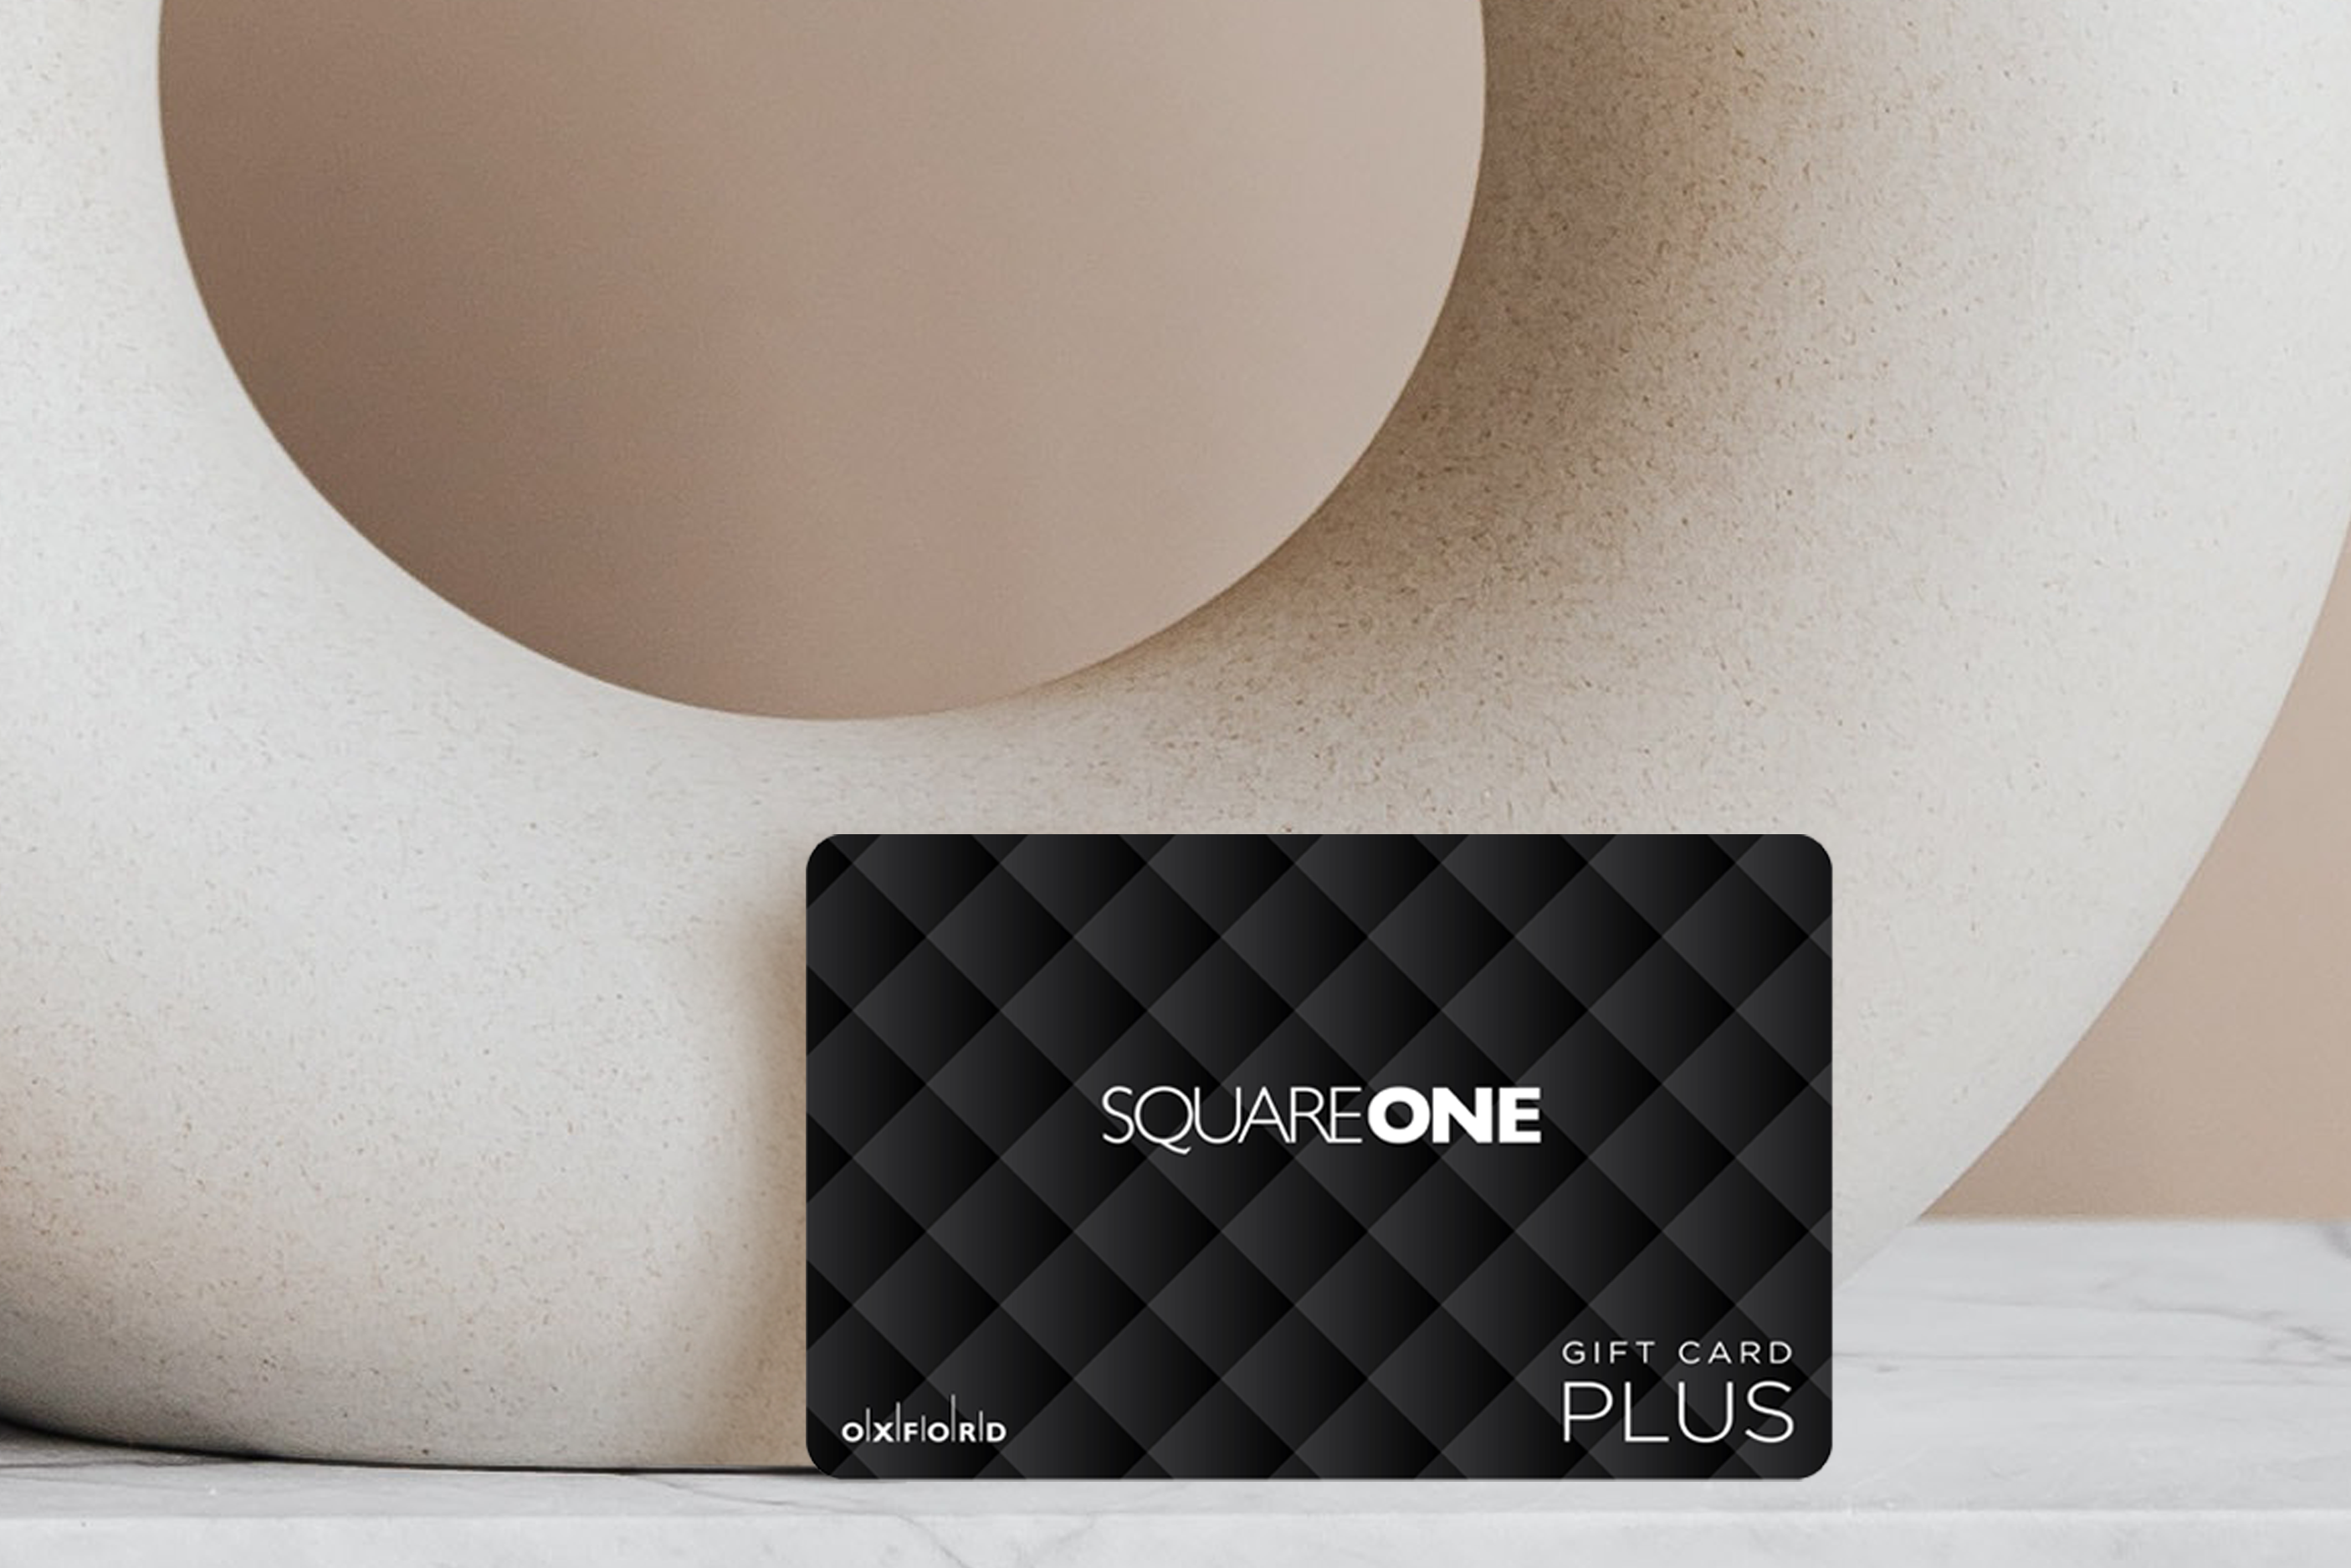 Square One black quilted gift card leaning against beige circular vase.